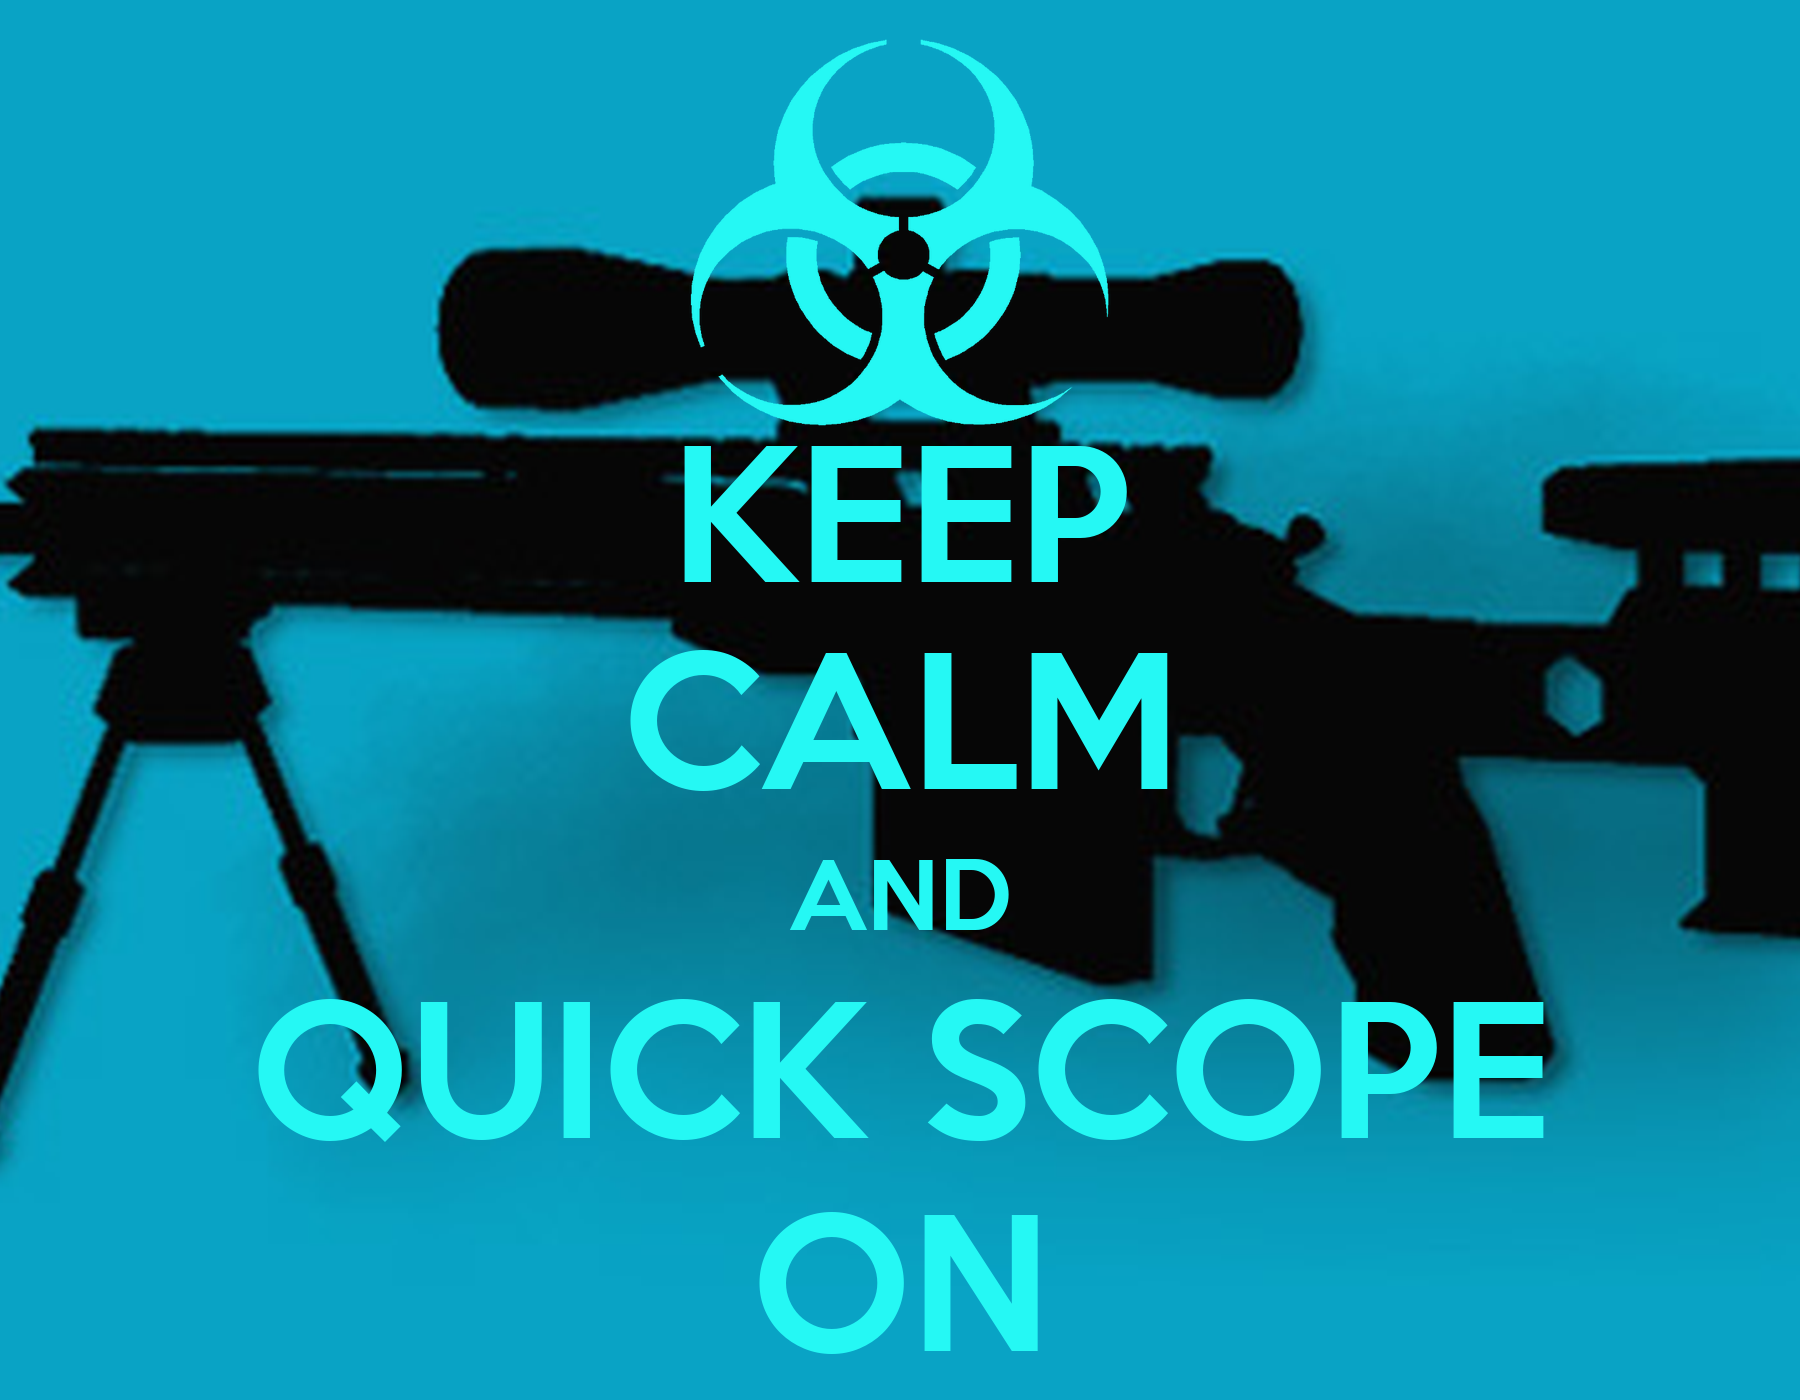 KEEP CALM AND QUICK SCOPE ON Poster